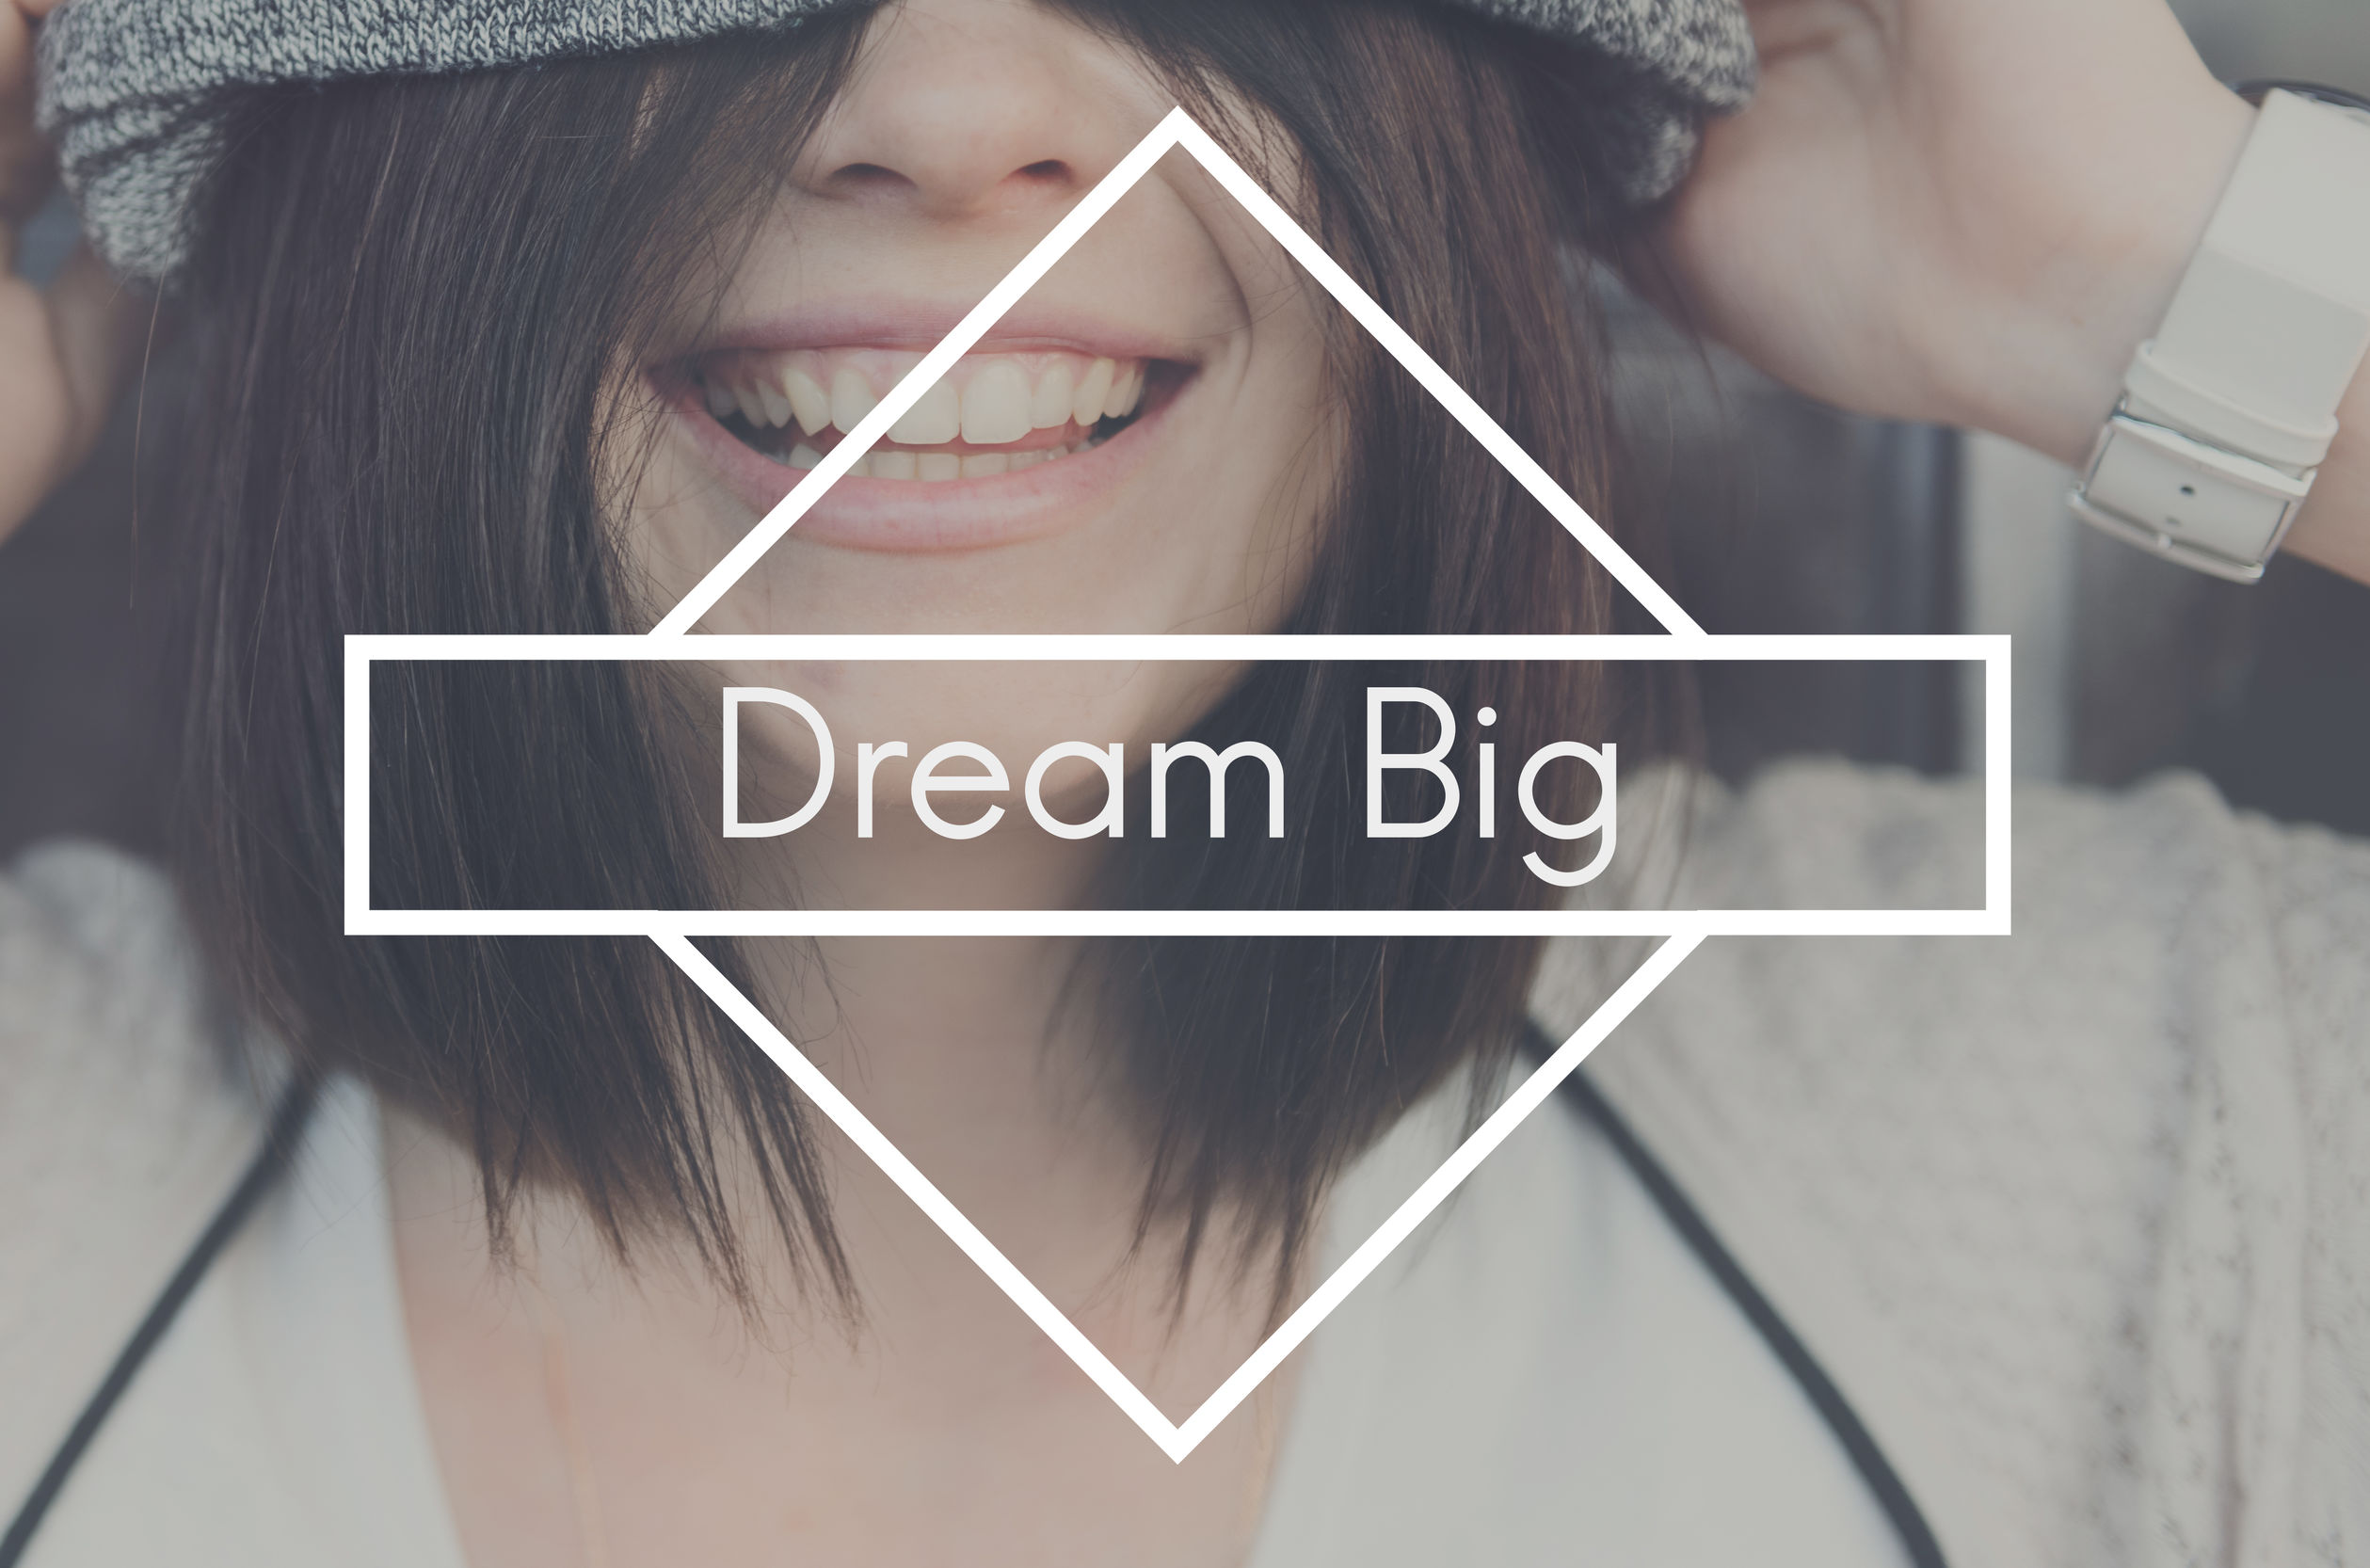 Dream Big Goal Hopeful Believe Target Vision Concept